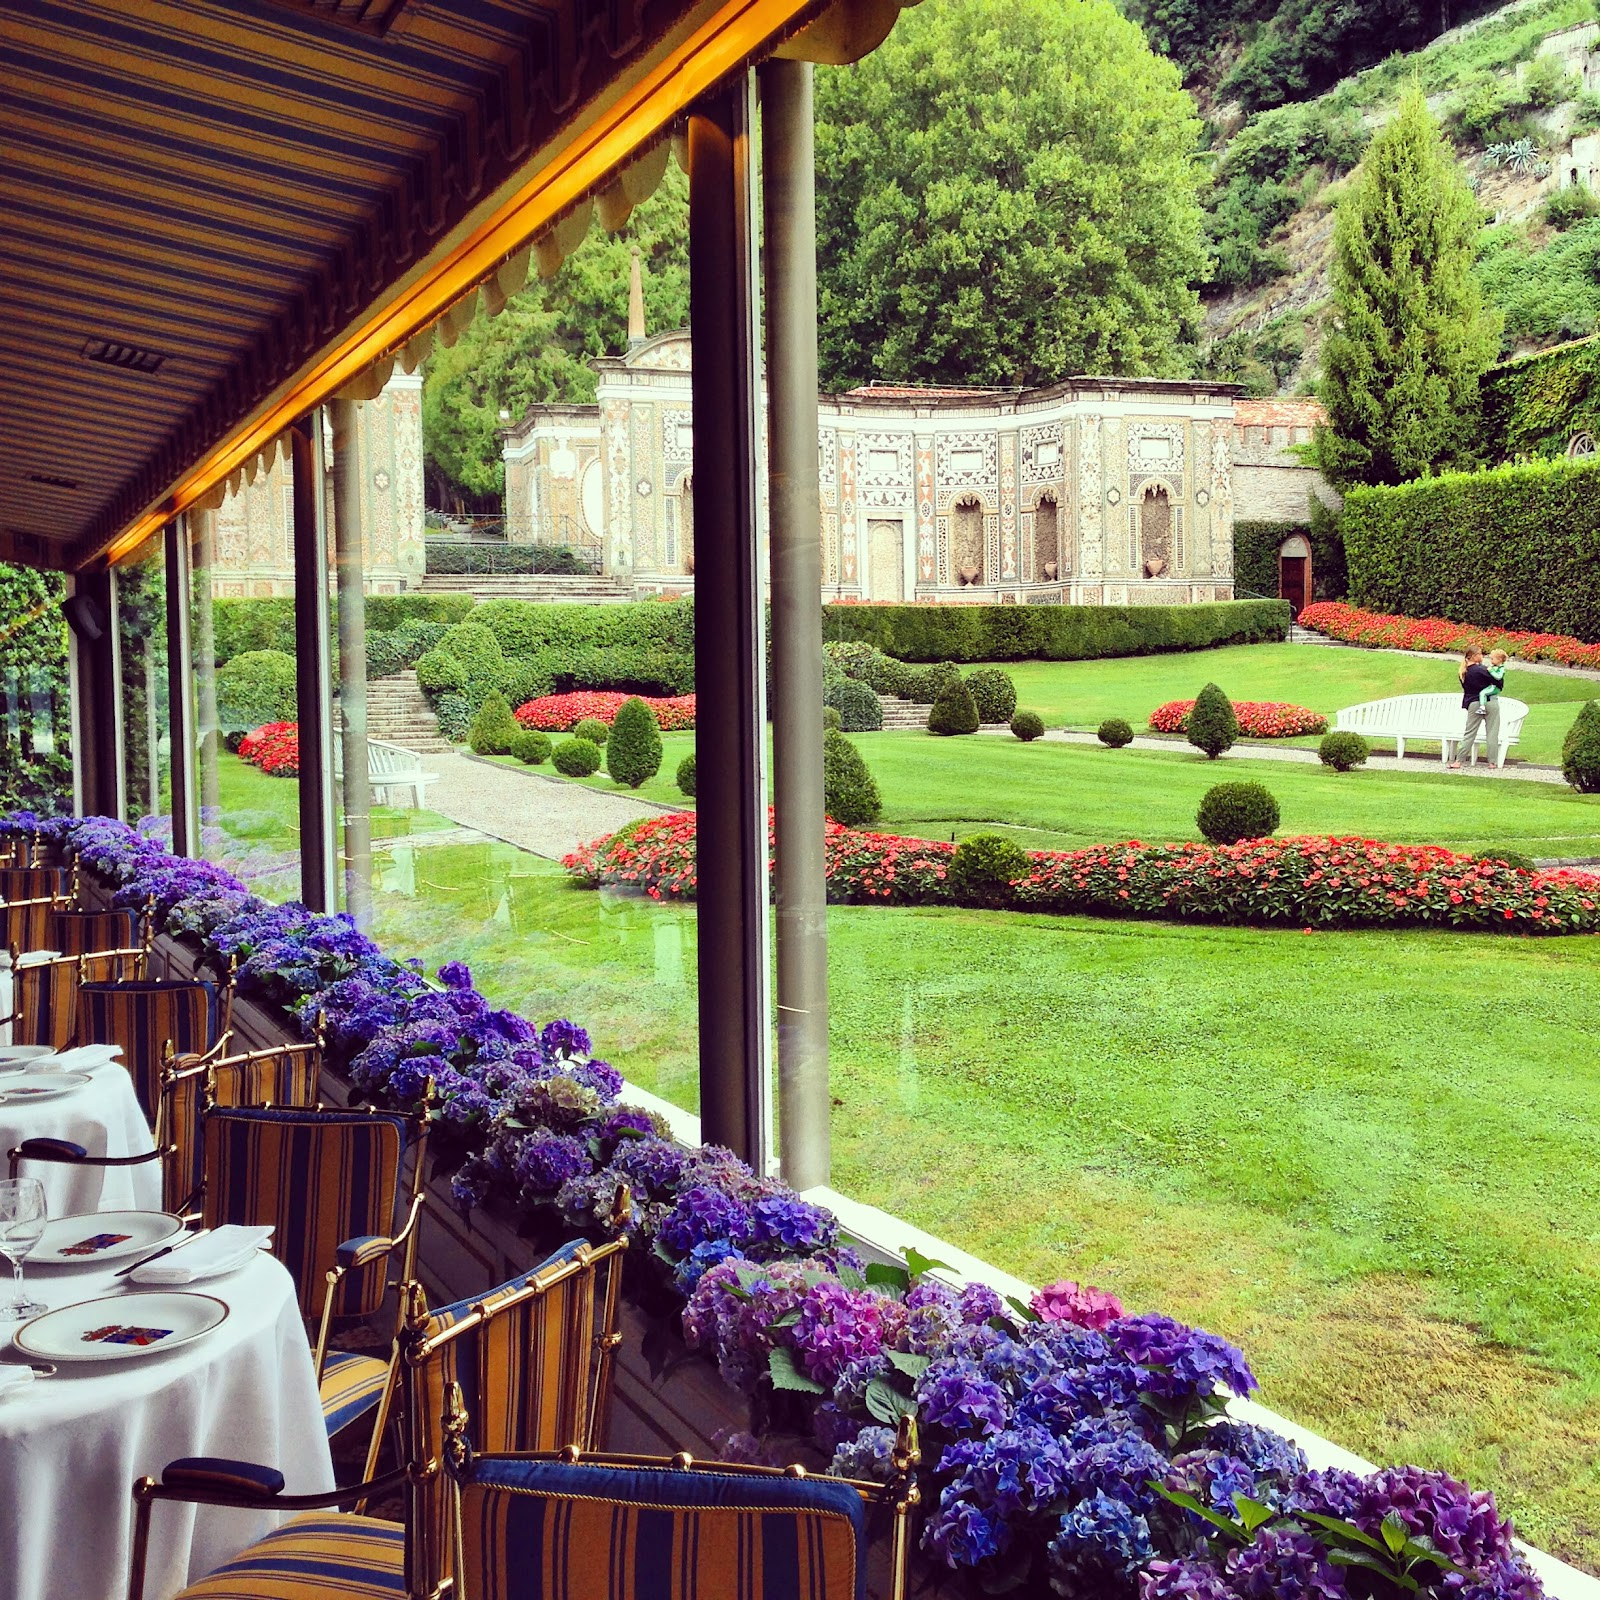 villa d'este restaurant. View the villa's beautiful garden while dining in the terrace. Empty, decorated tables, windows lined with purple flowers and park with tourist on bench.